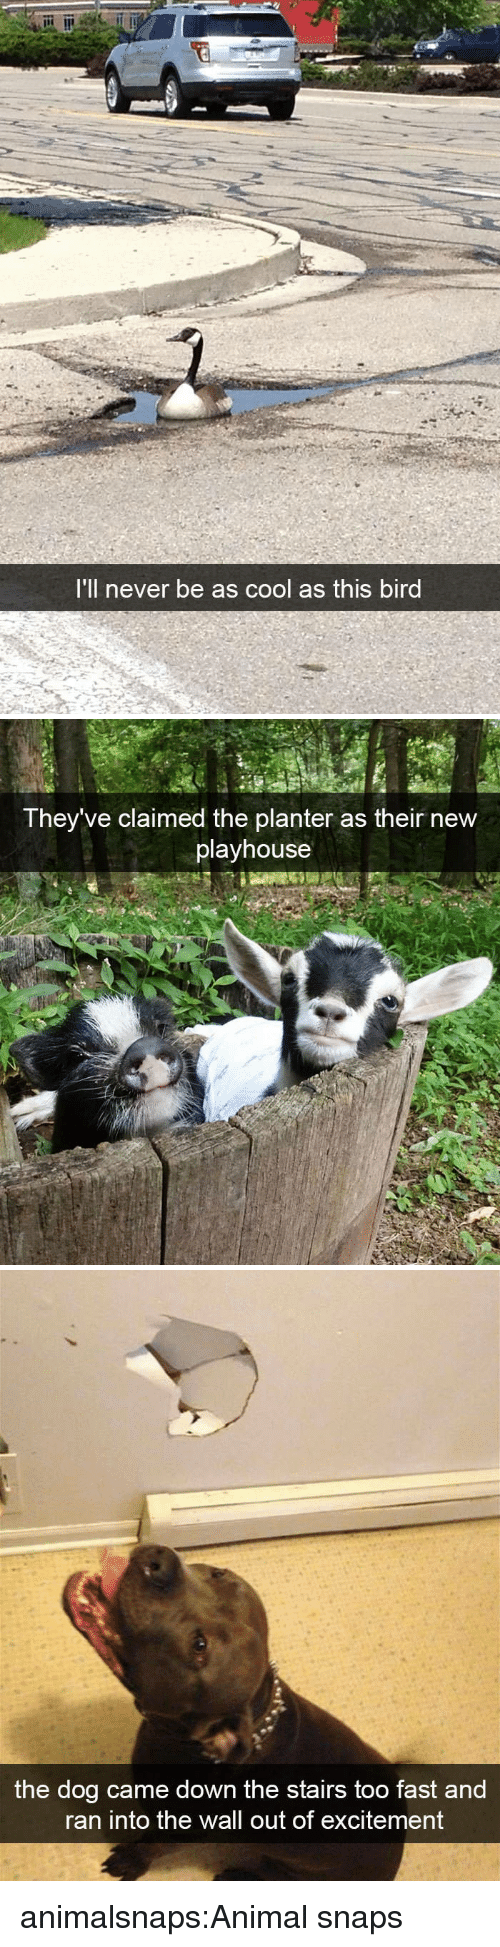 Target, Tumblr, and Animal: 'll never be as cool as this bird   They've claimed the planter as their new  playhouse   the dog came down the stairs too fast and  ran into the wall out of excitement animalsnaps:Animal snaps